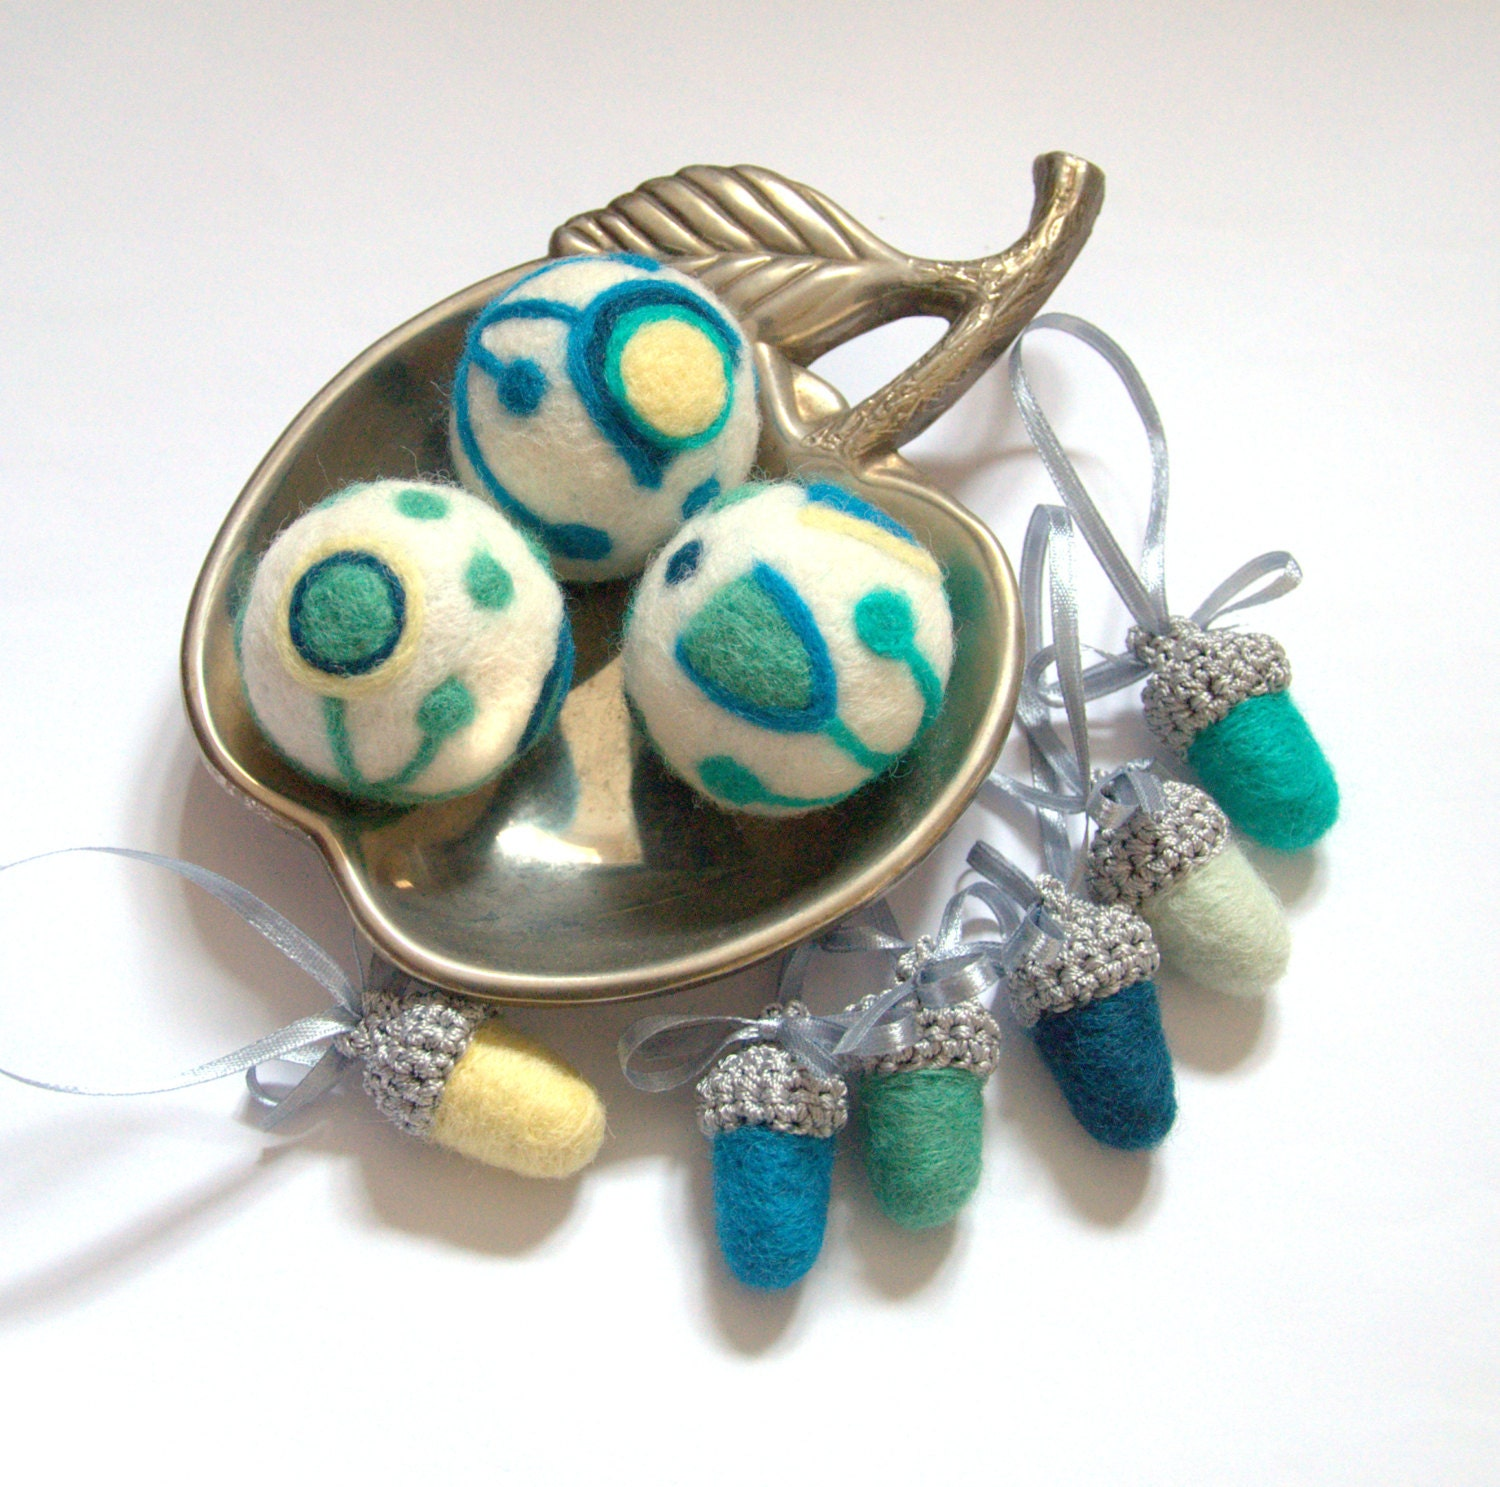 Modern Easter ornaments 12 felted wool acorns 3 balls teal blue green pale yellow winter home decor Weddings favor tree decoration